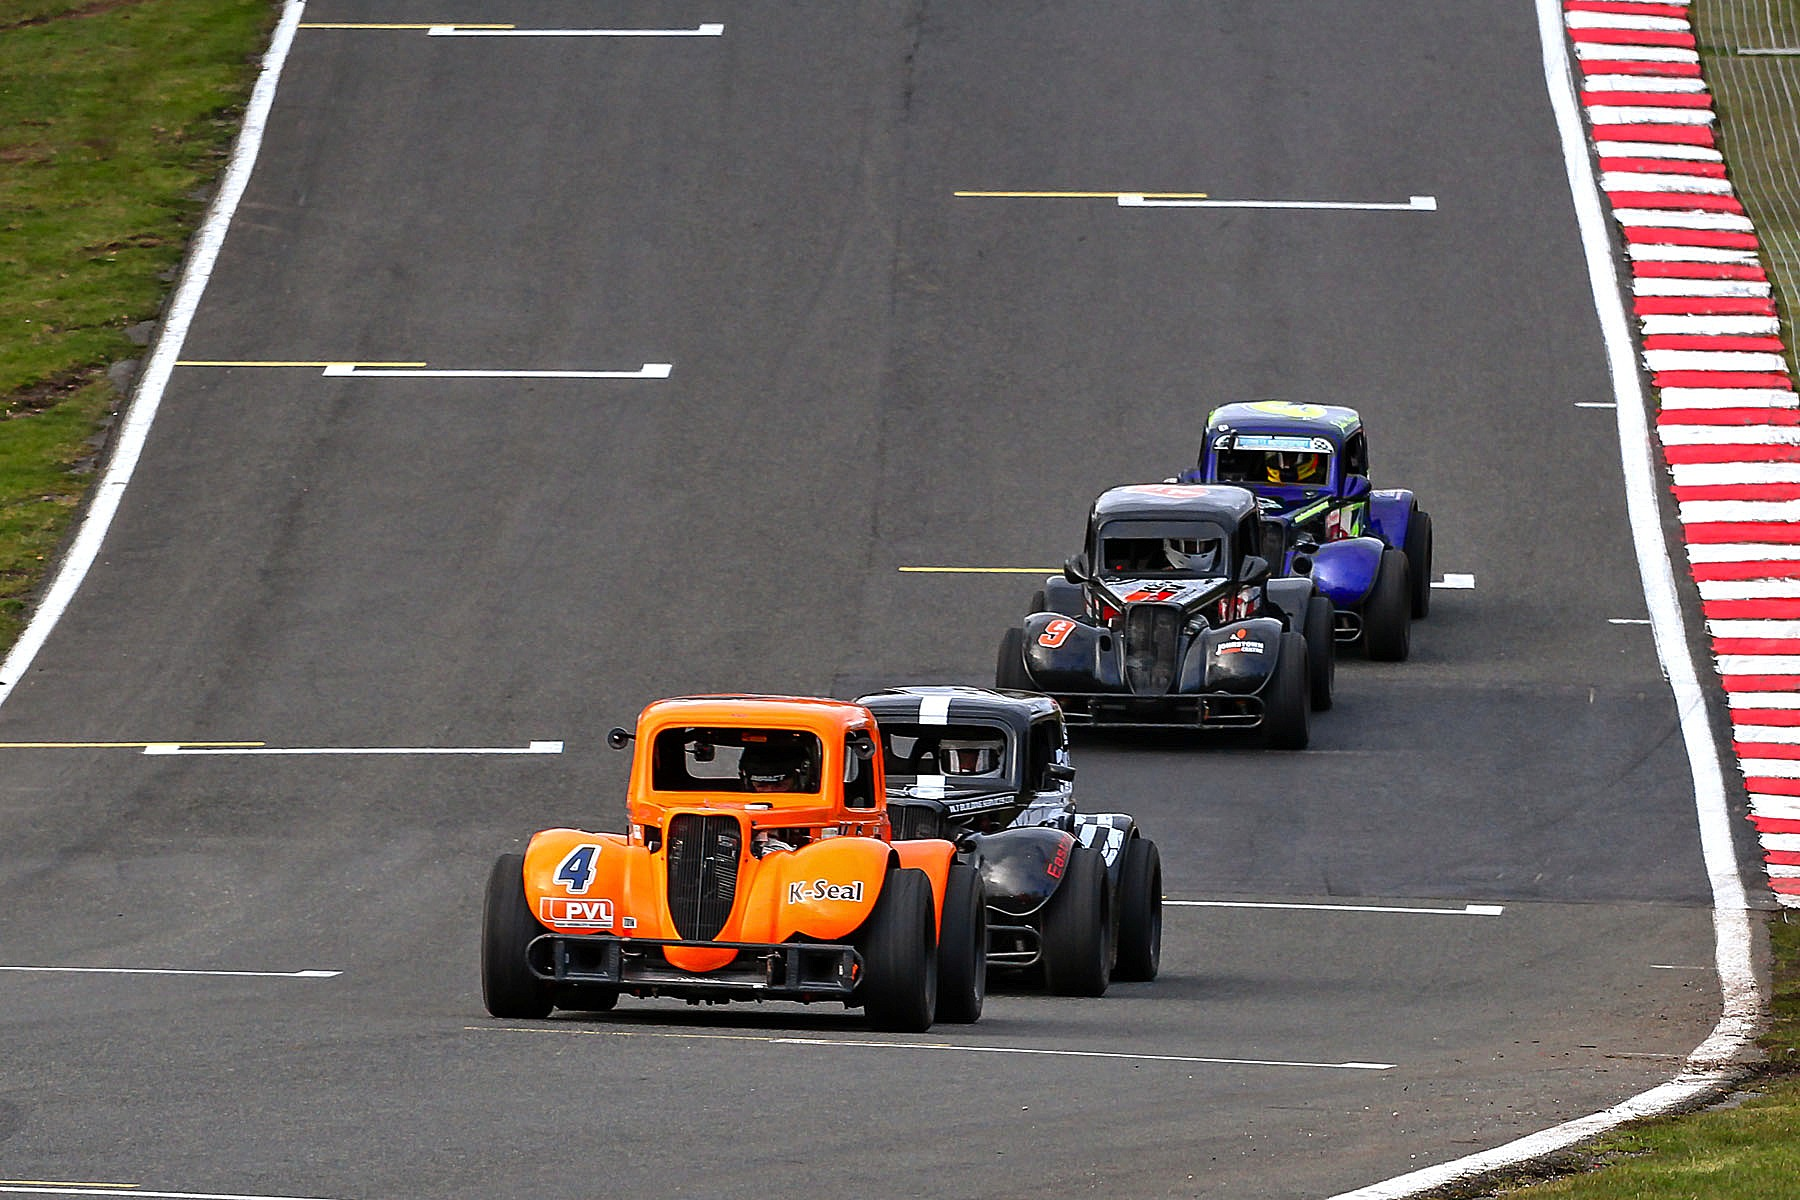 2015 - Round 1 - Oulton Park Gallery Image 54